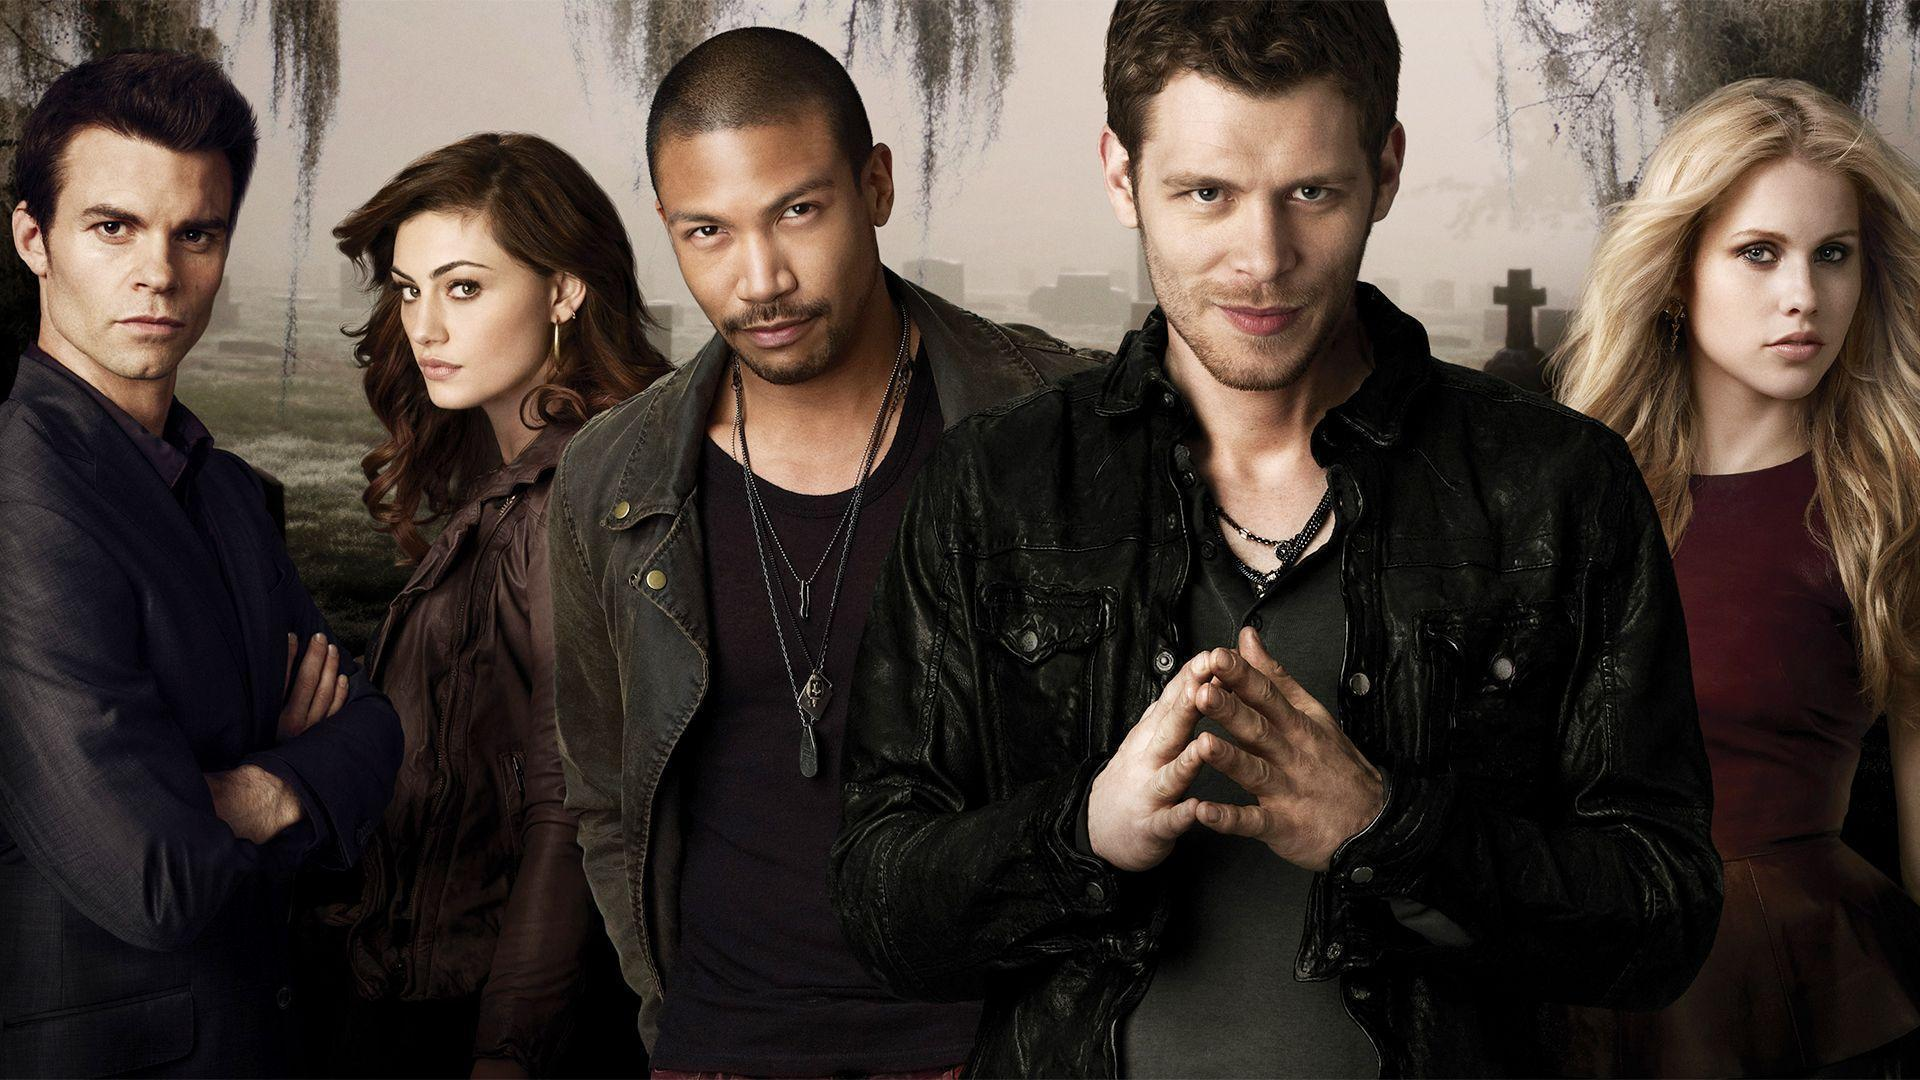 The Originals Wallpapers Wallpaper Cave